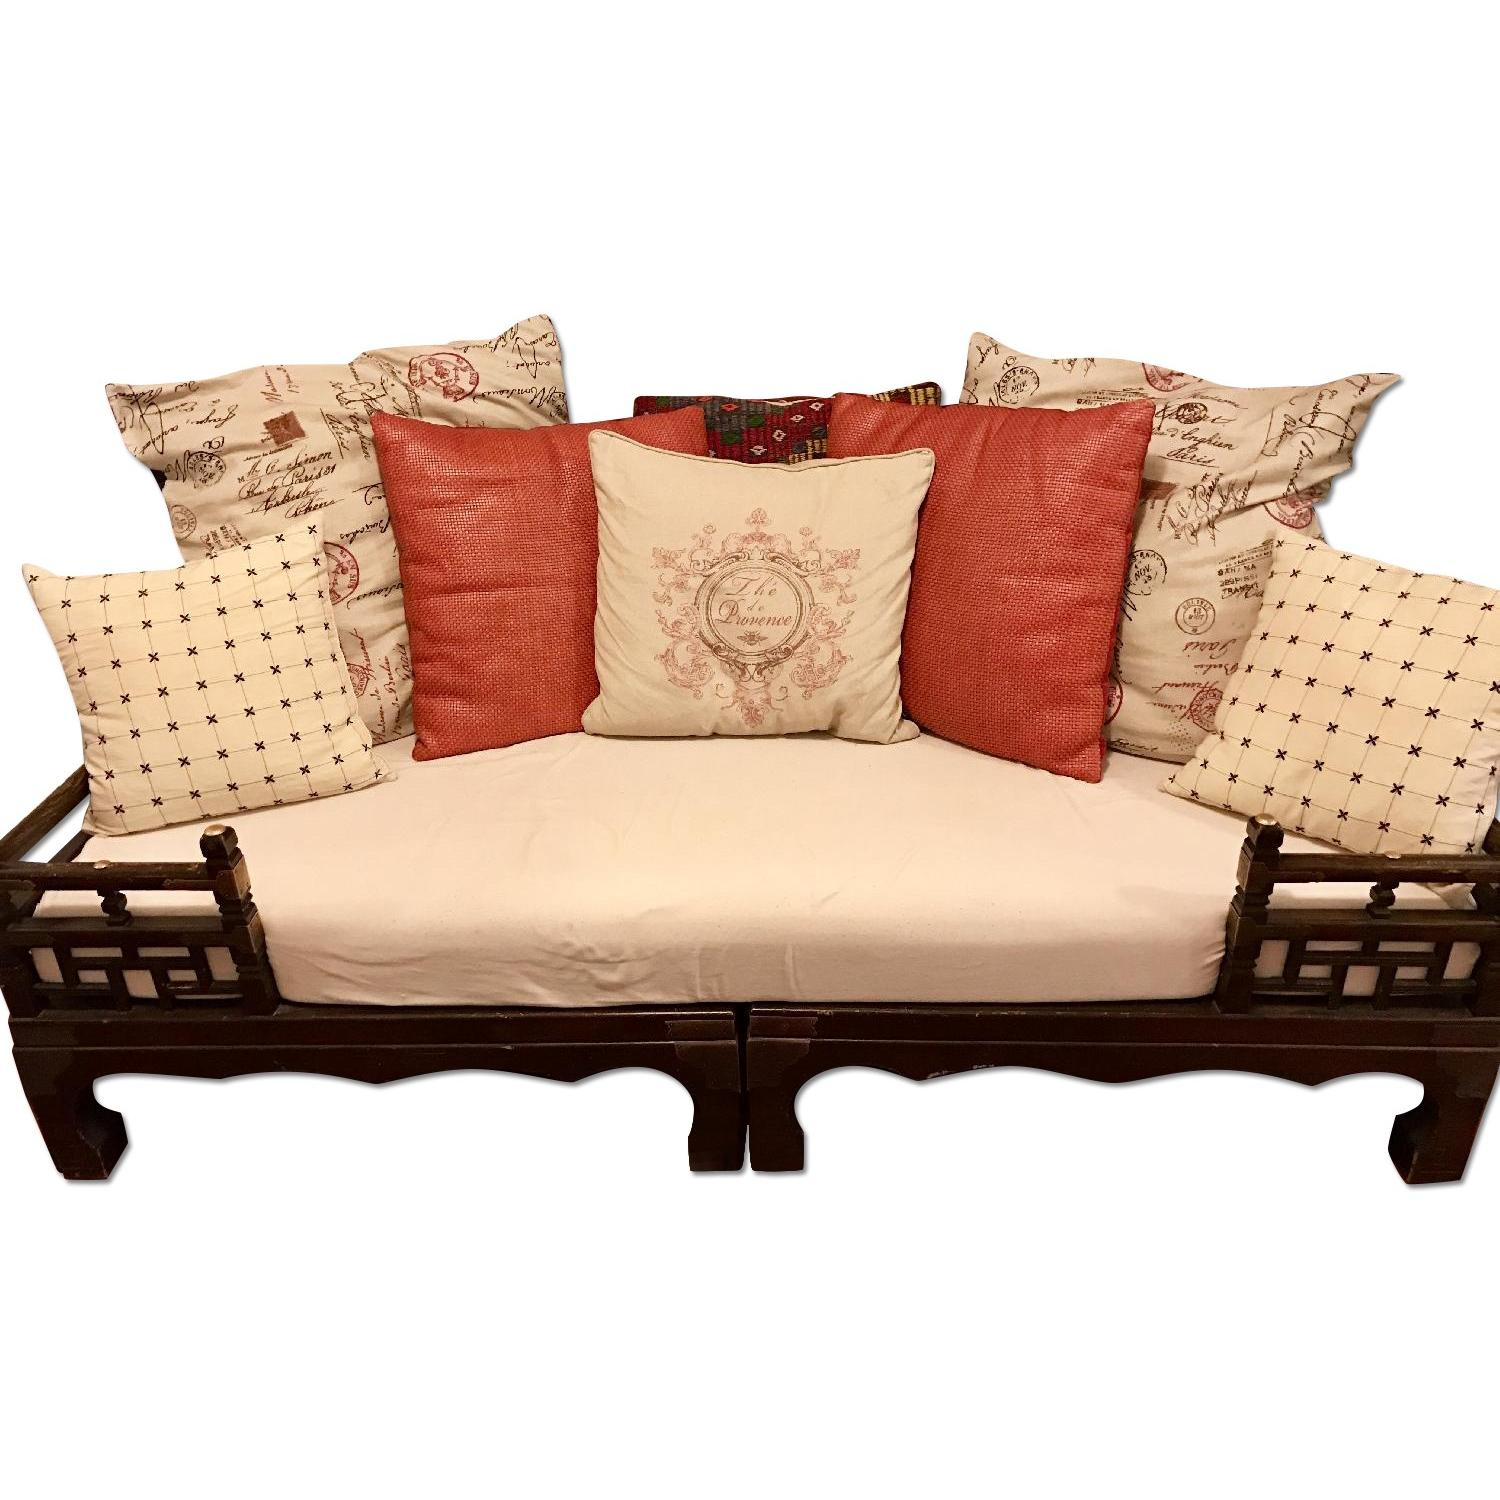 2 Piece Indonesian Daybed w/ Pillows - image-0